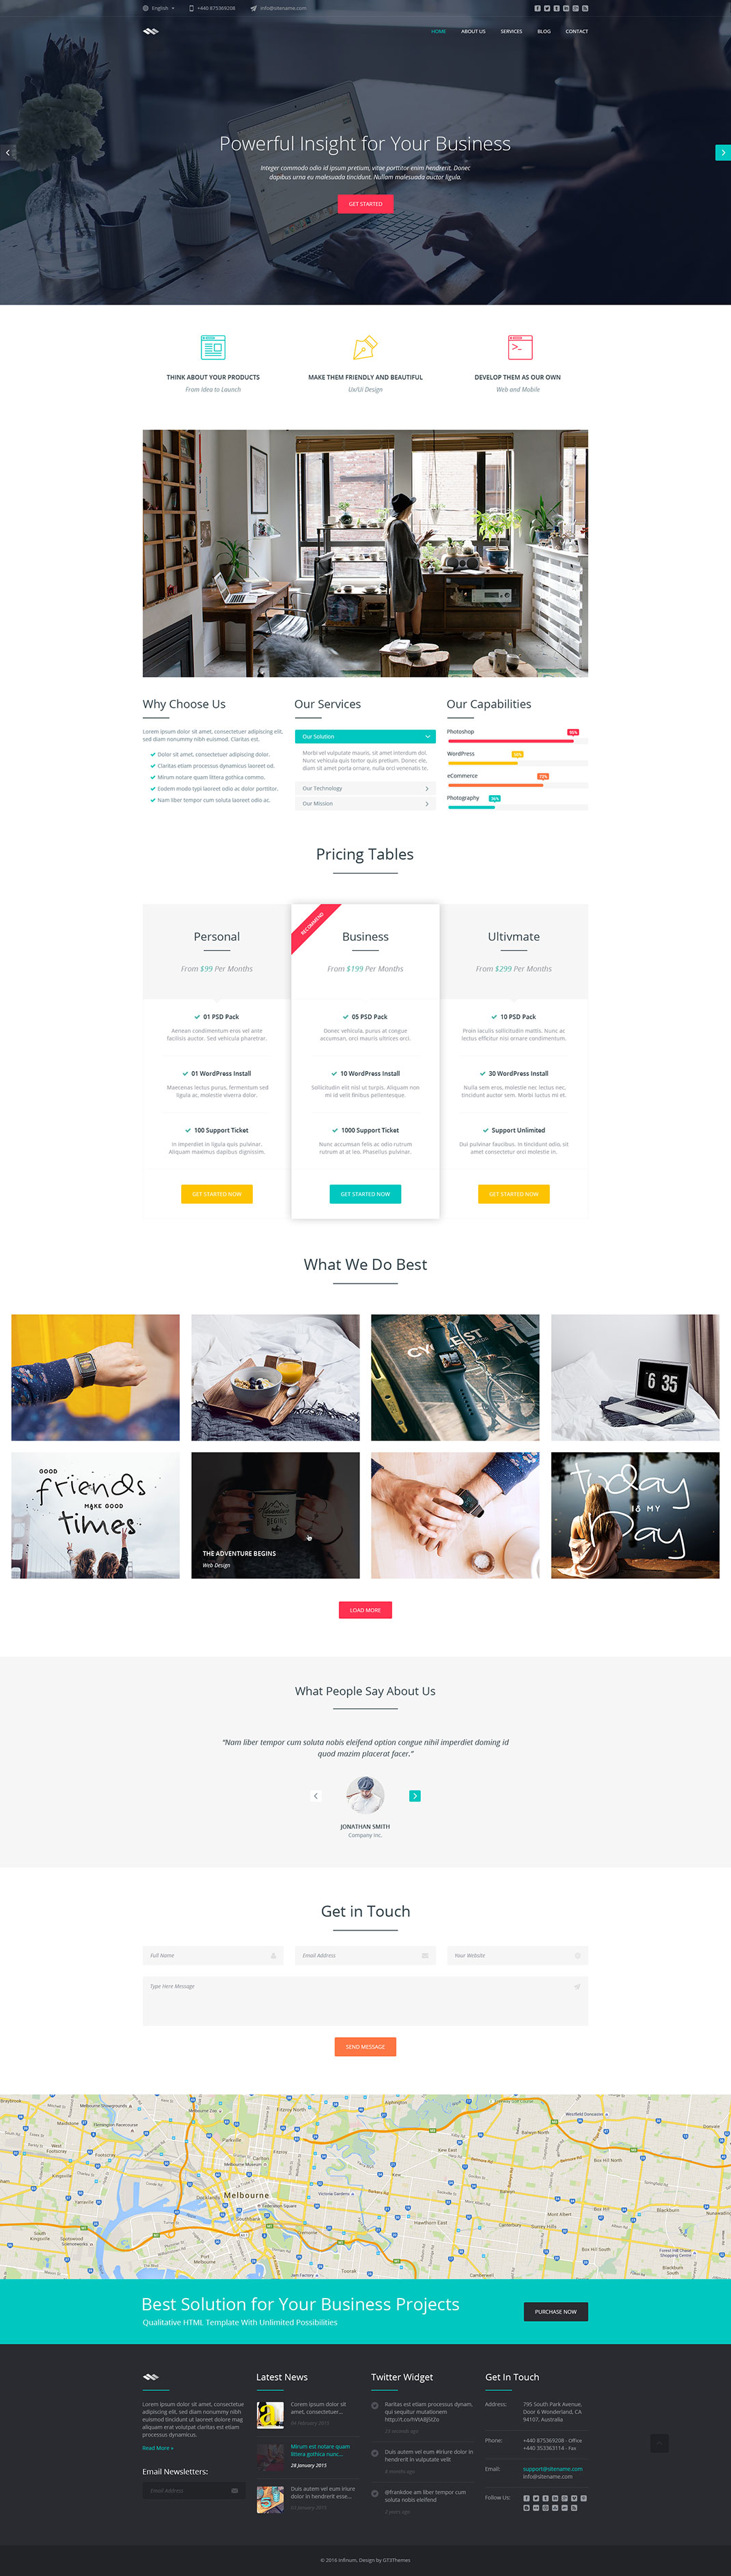 Business One Page HTML Template Infinum - Html web page template